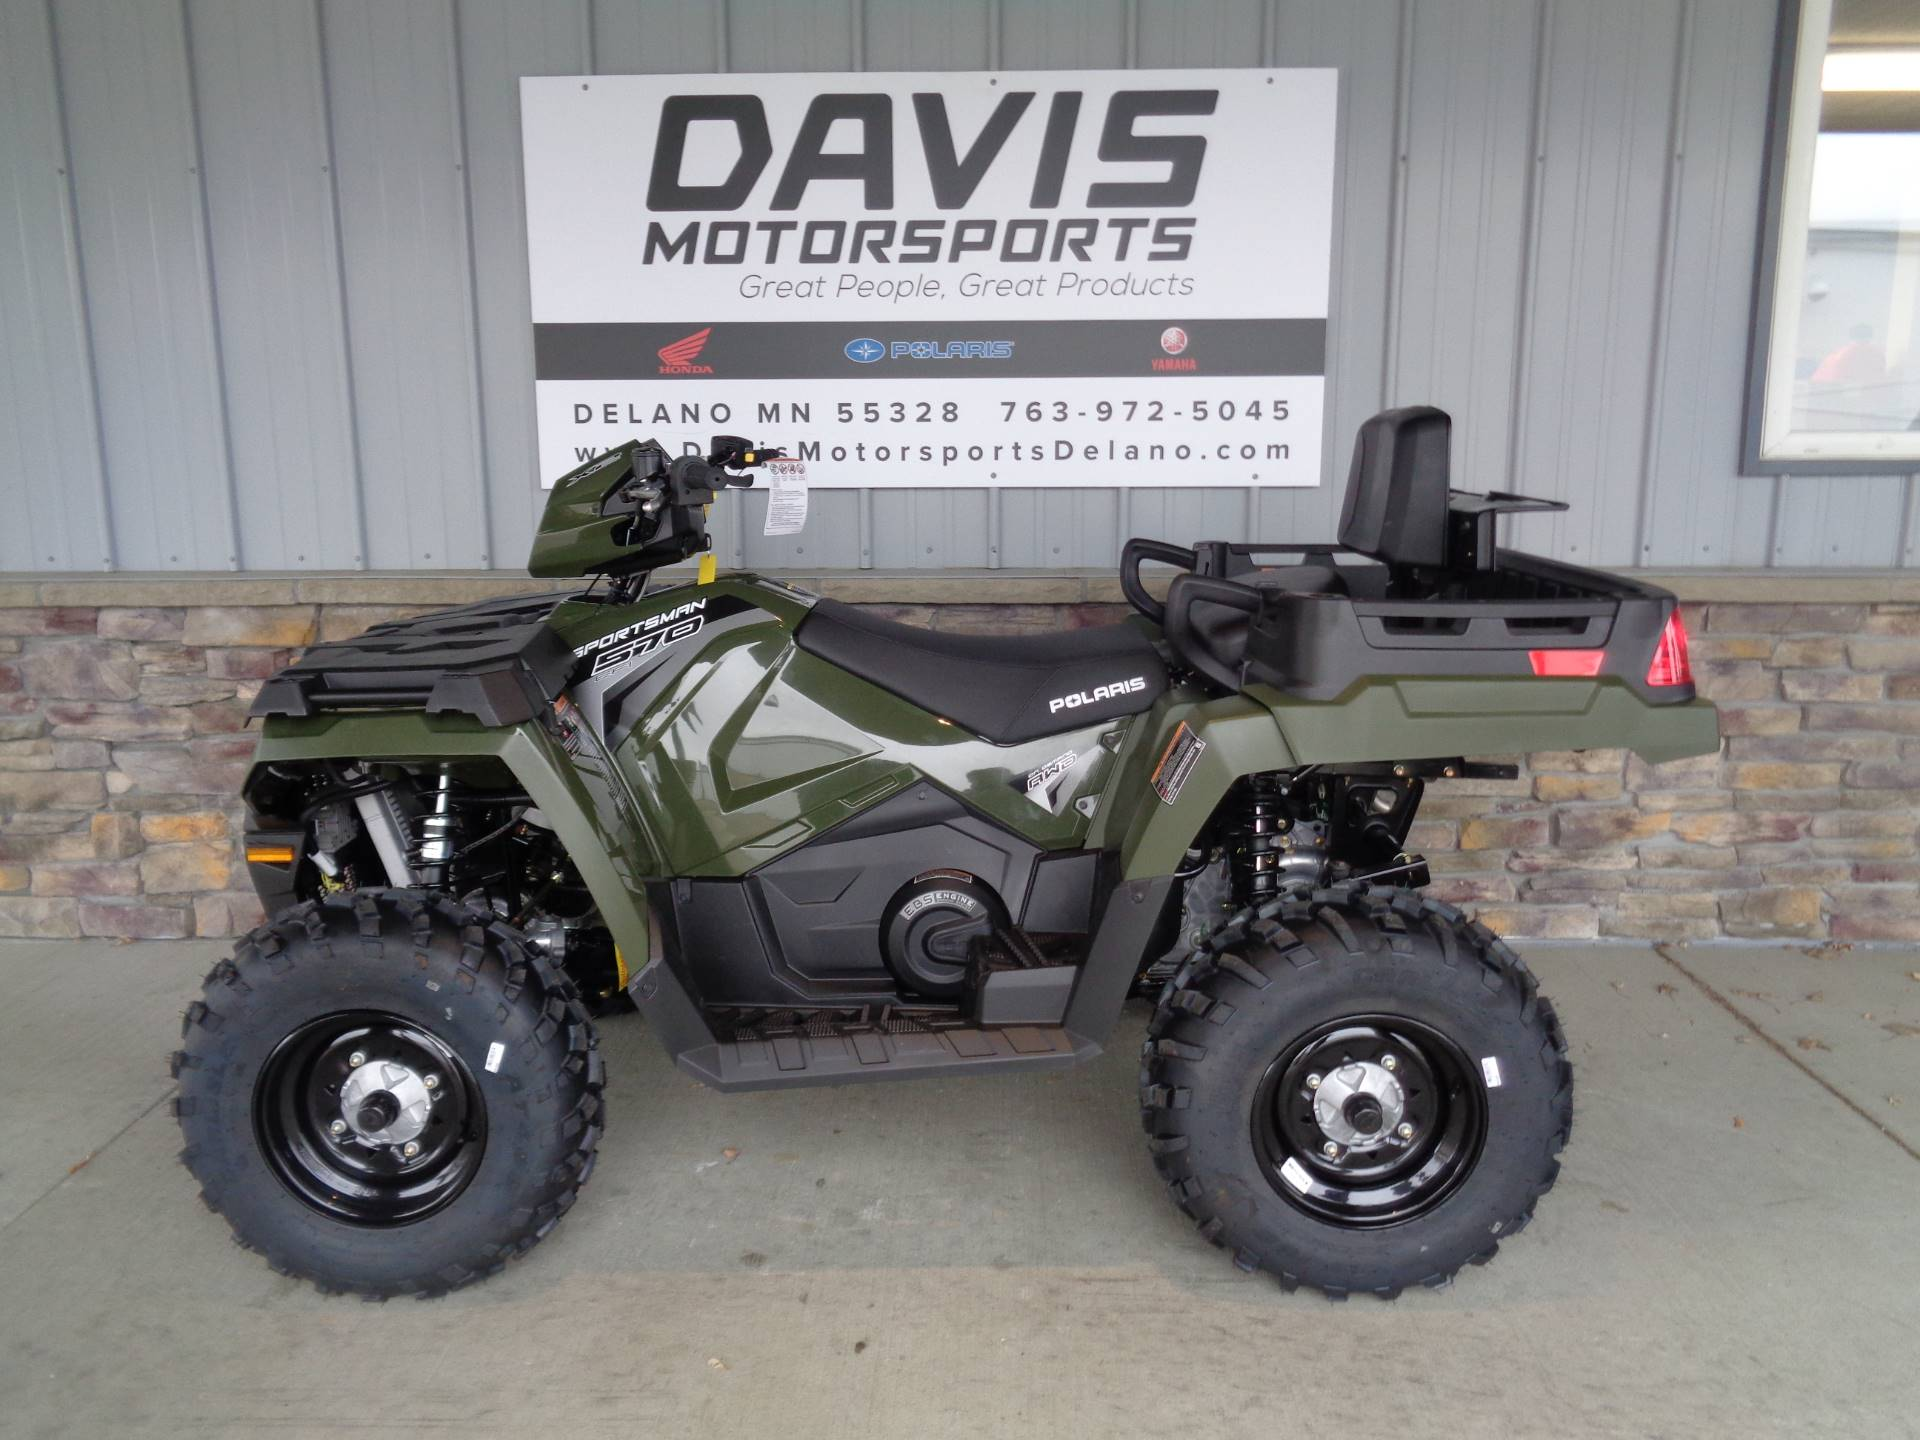 2019 Polaris Sportsman X2 570 in Delano, Minnesota